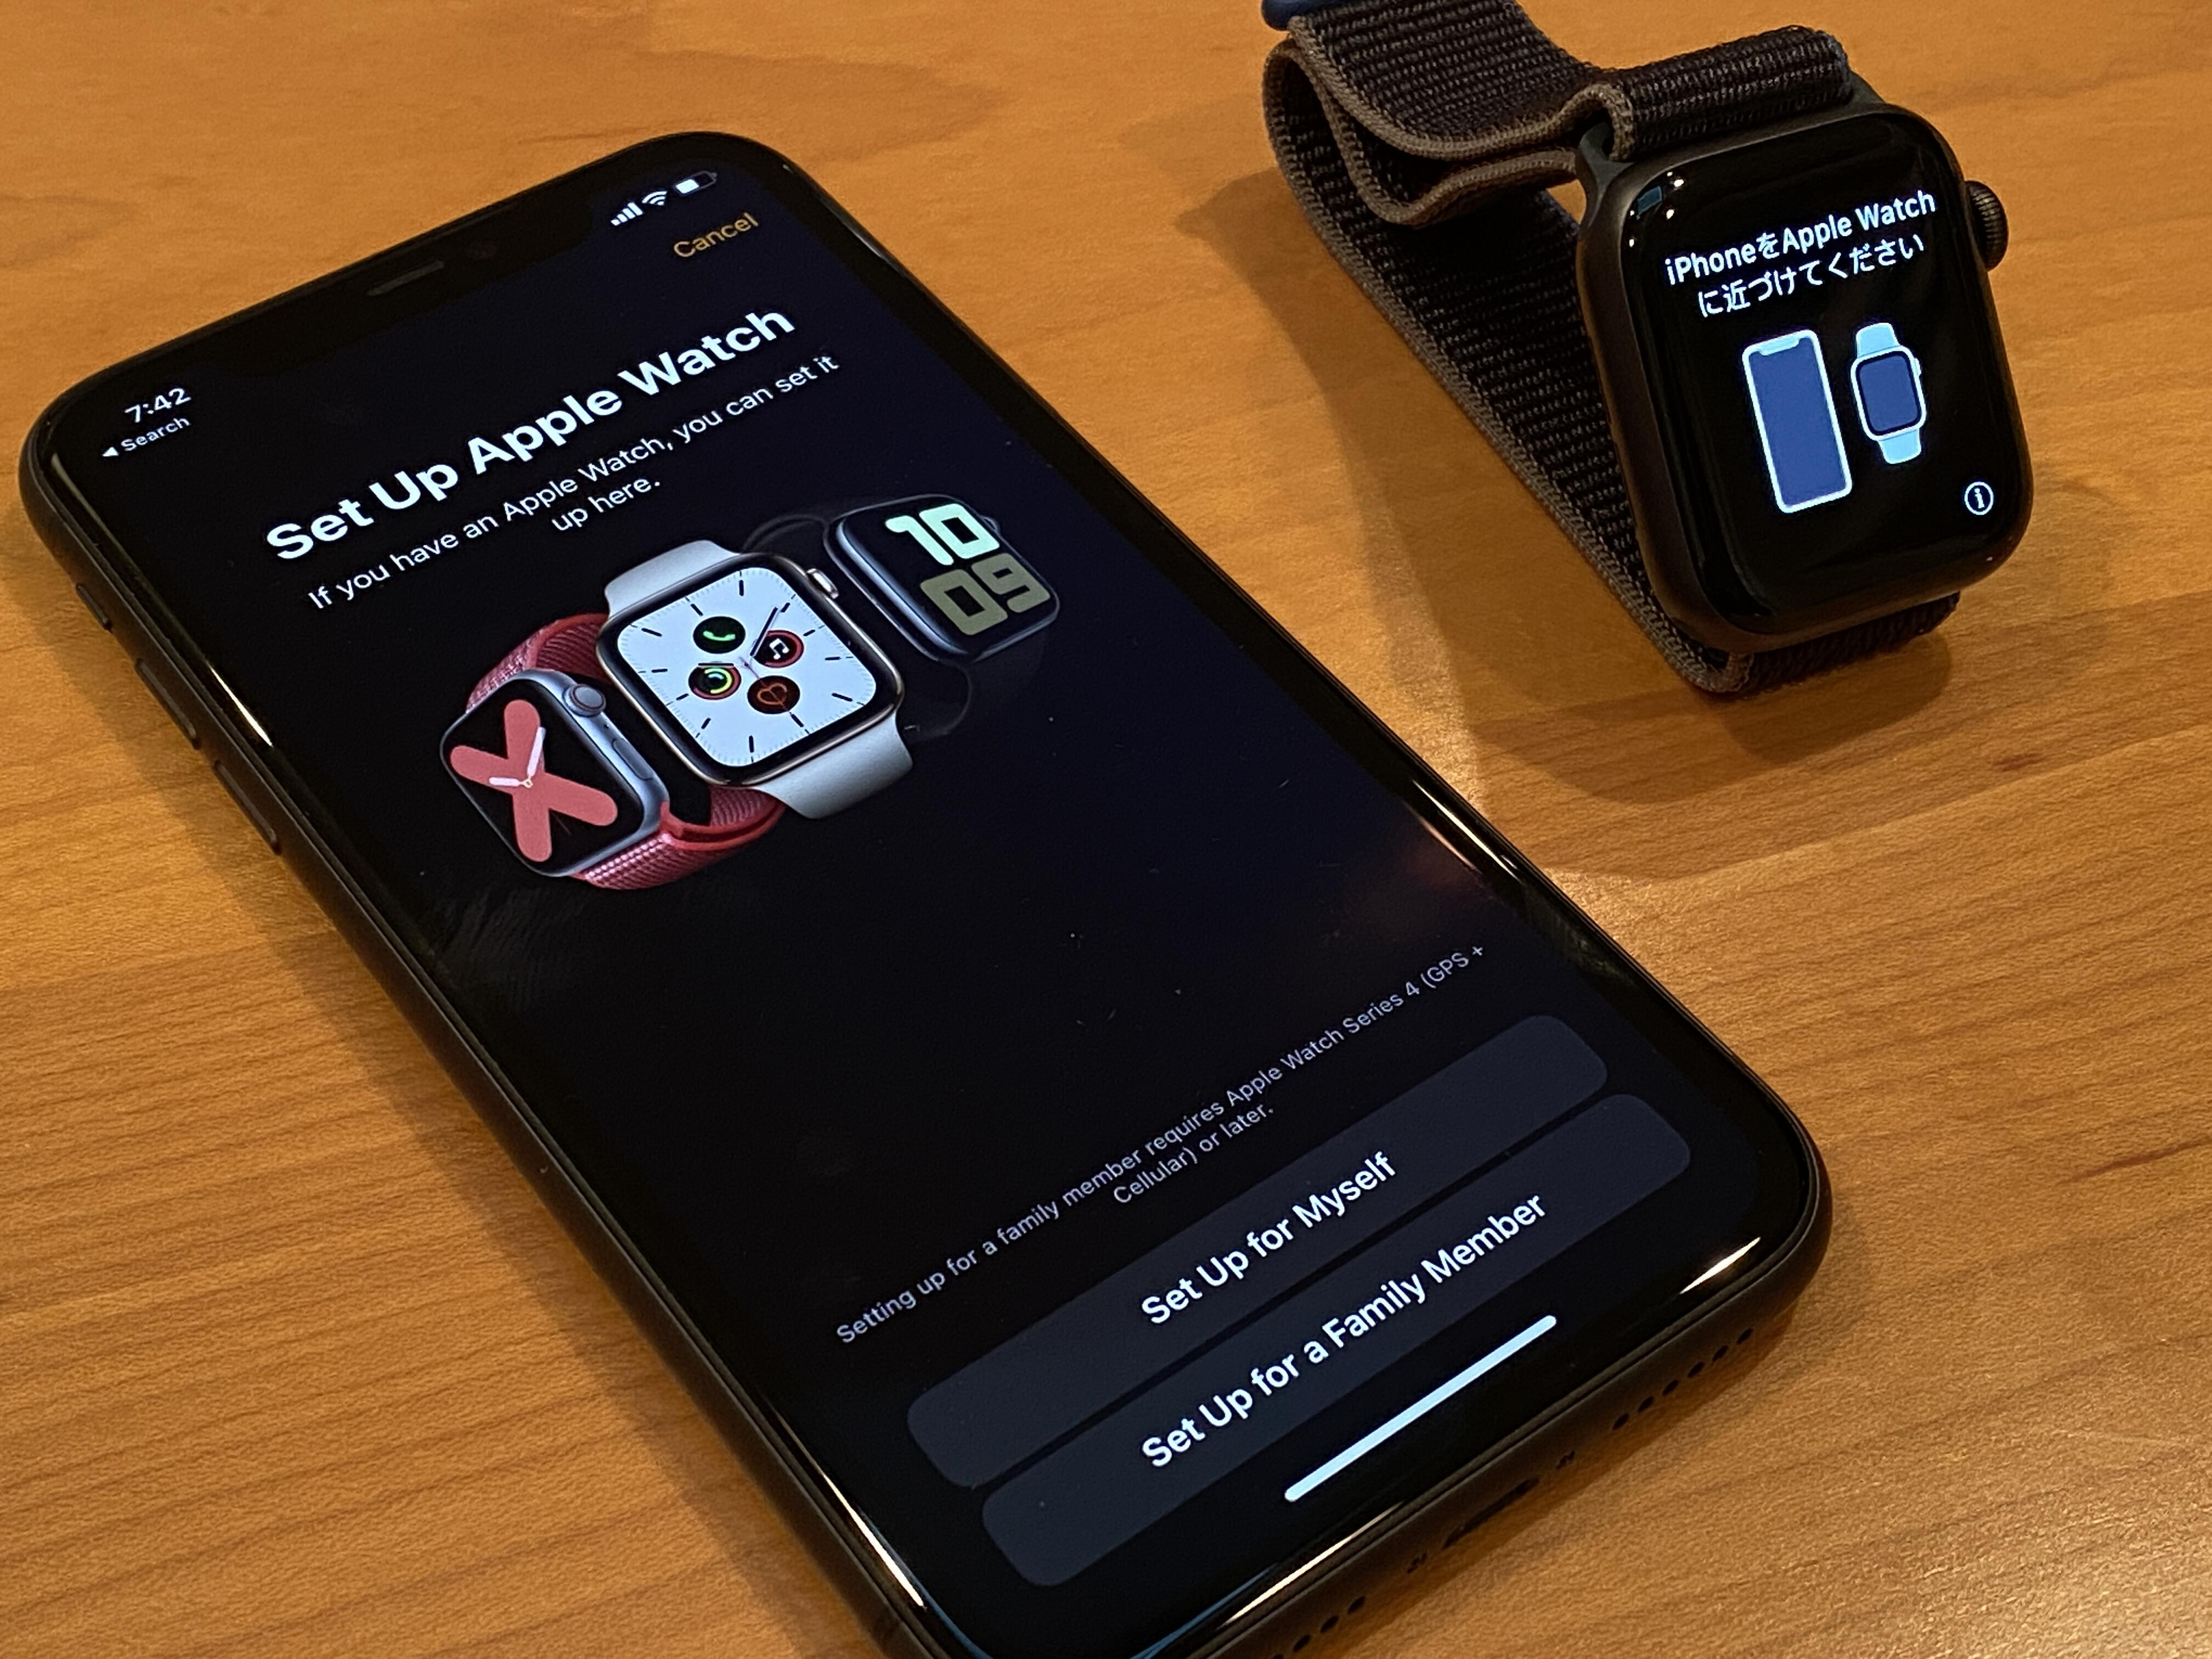 <p>Setting up an Apple Watch for a kid isn't that bad, but you need a cellular watch and cellular plan.</p>